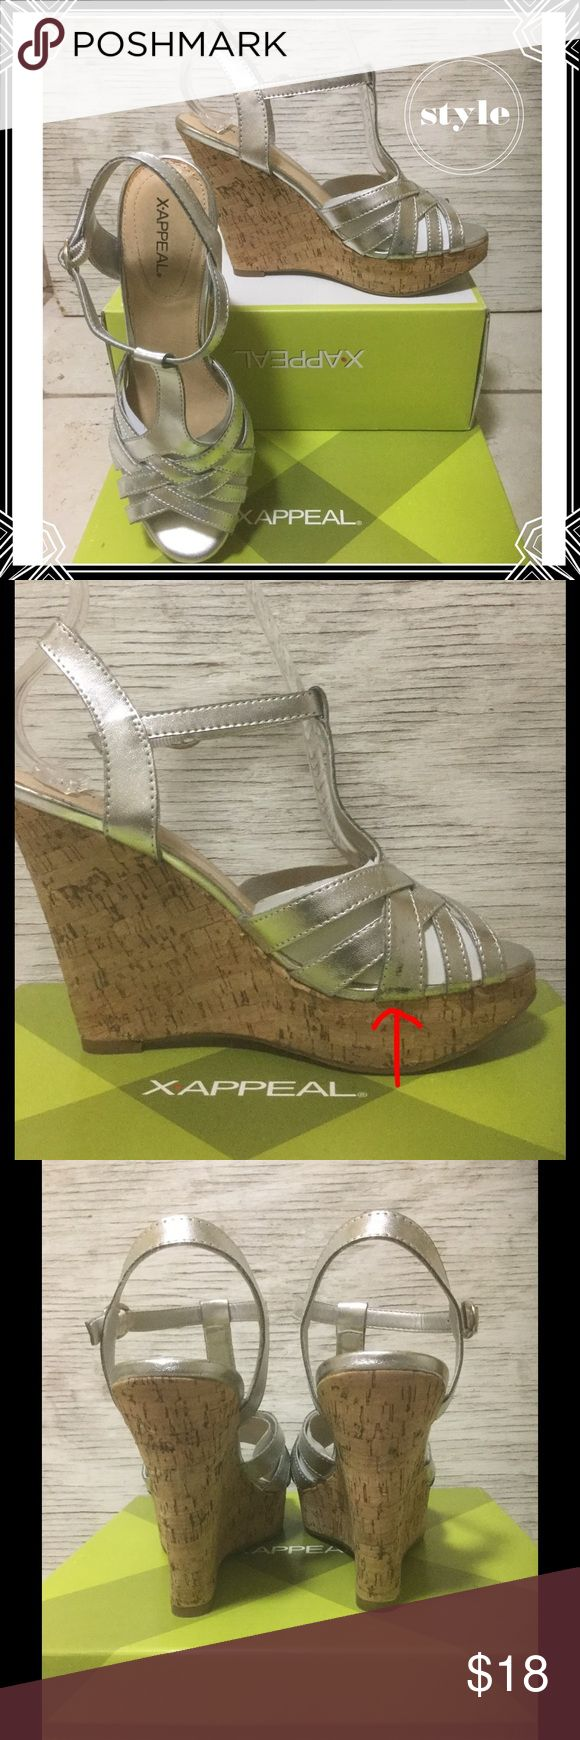 """X-APPEAL Silver Wedges Bring in the New Year with these gorgeous silver wedges. Shoes are in excellent used condition, the only flaw is a small scuff as shown in picture 2. Heel is 4.25"""" platform 1.25"""". X-Appeal Shoes Wedges"""